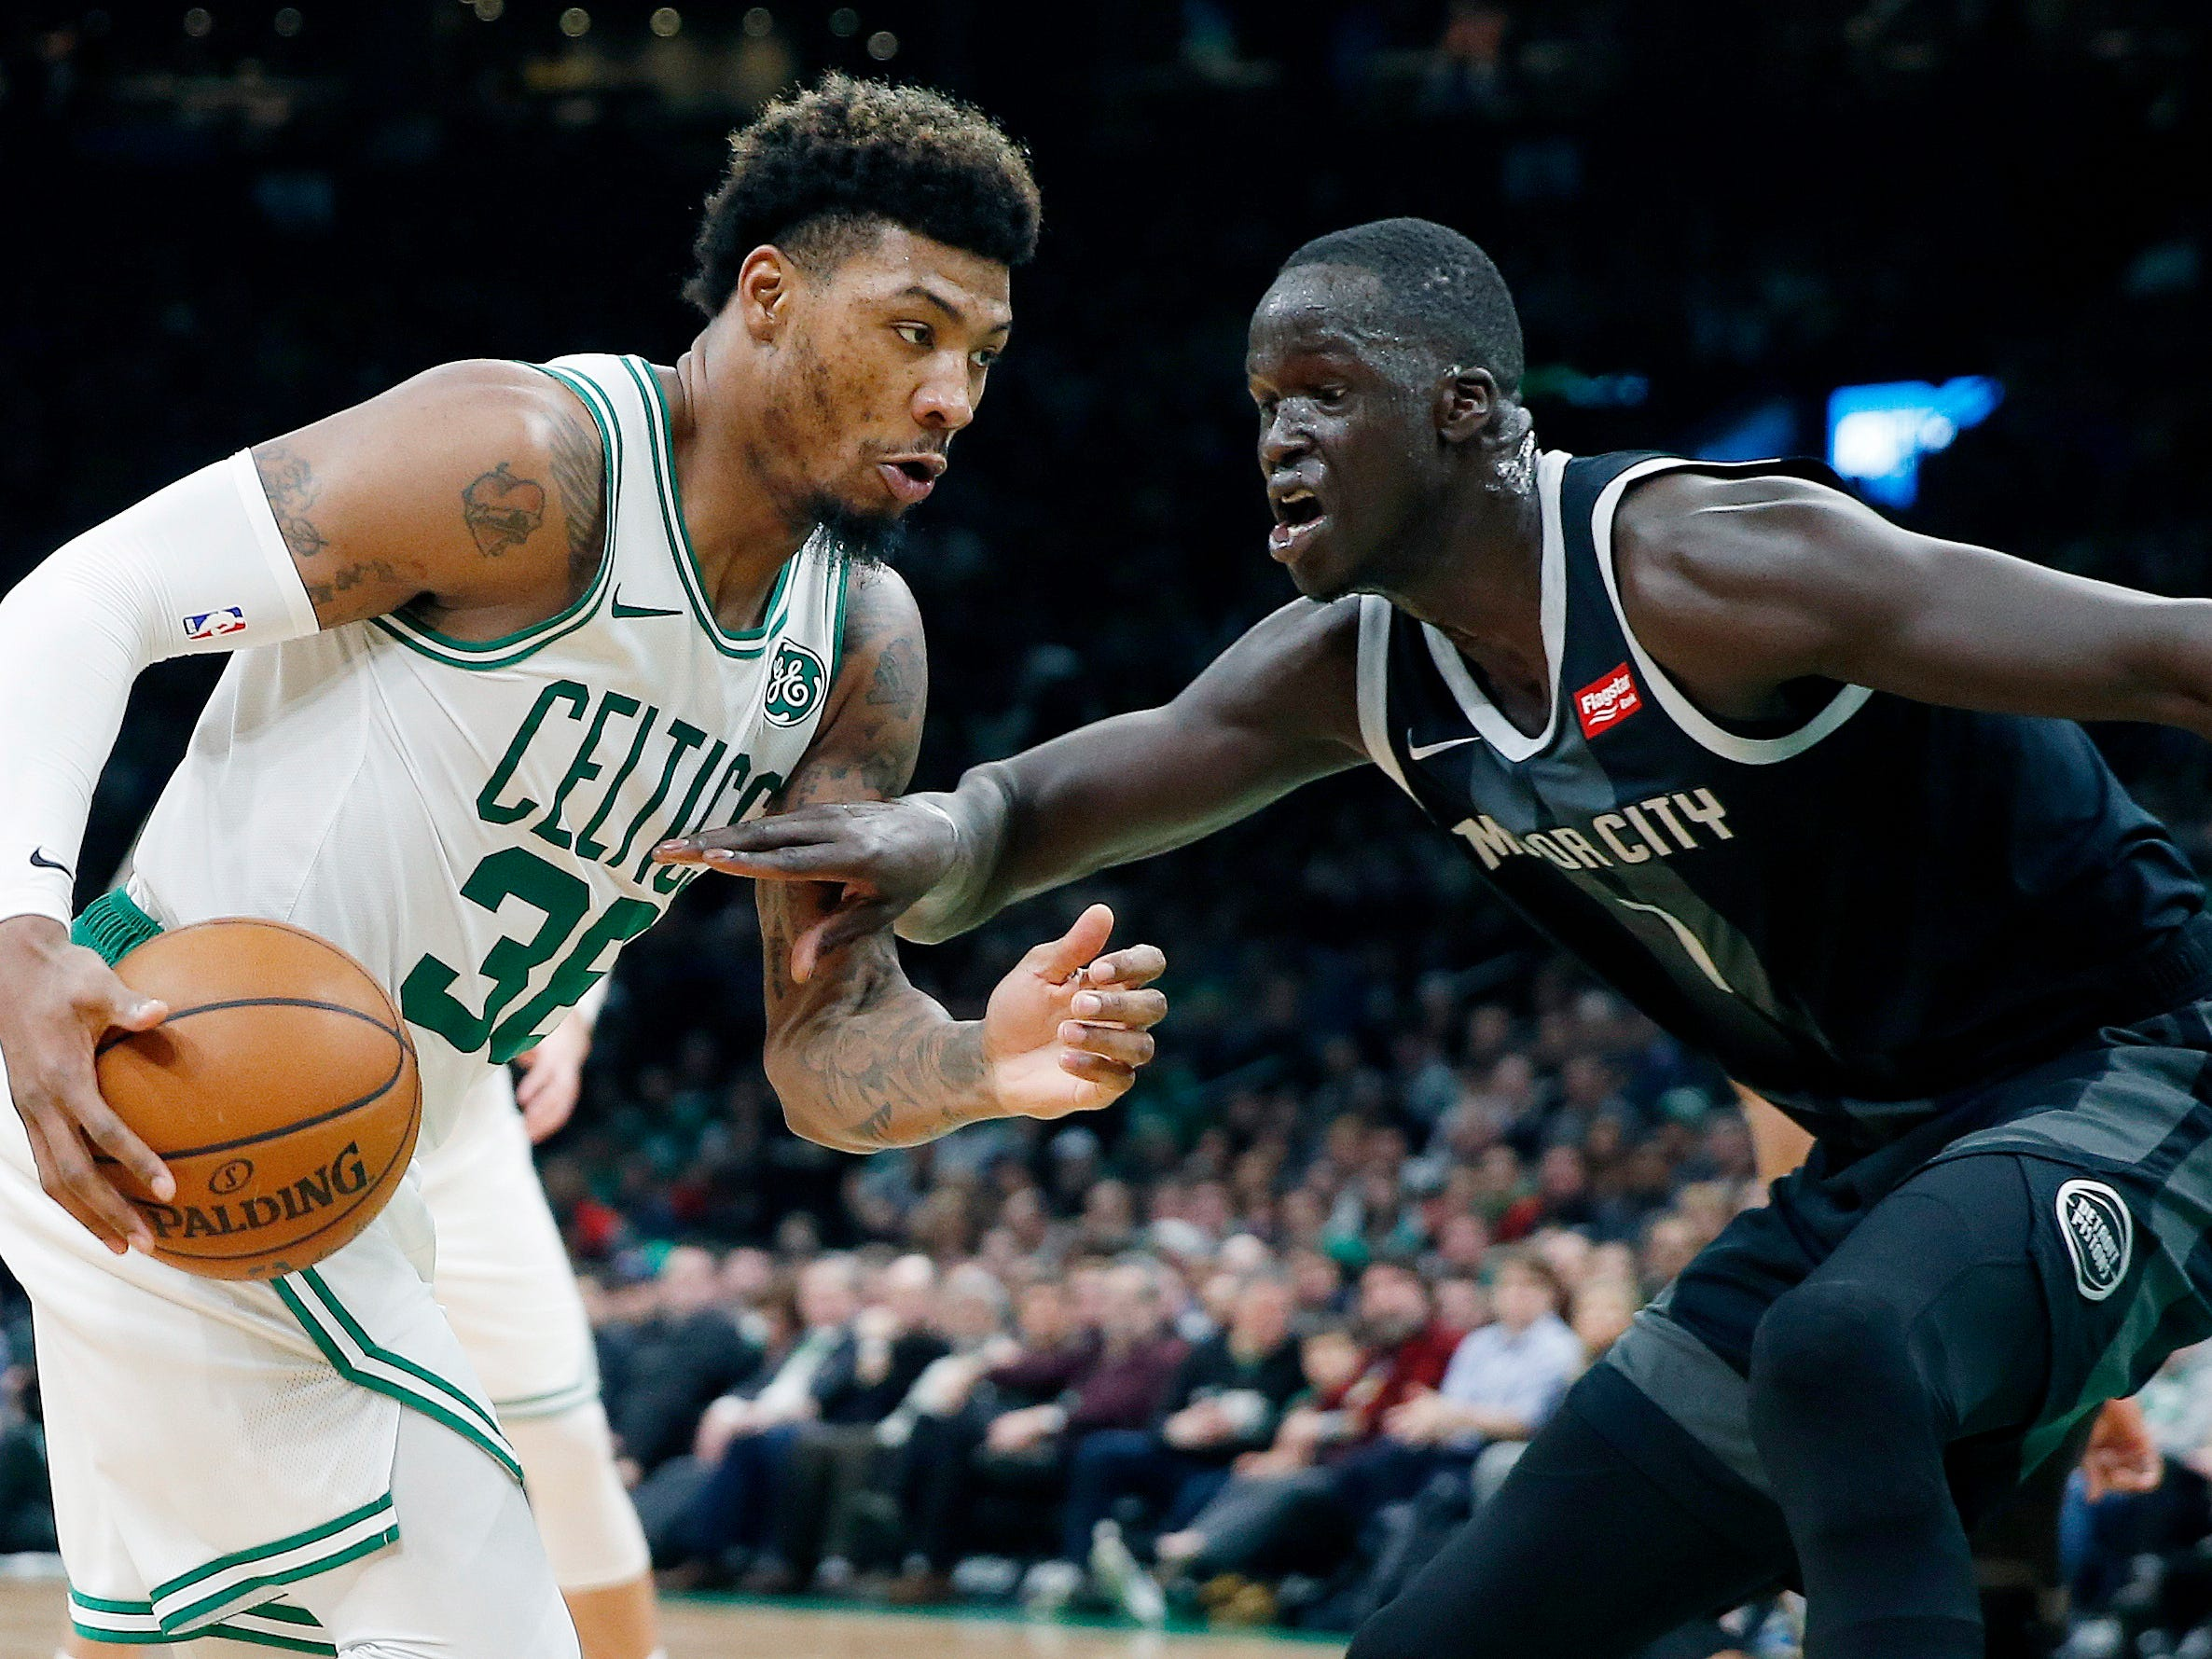 Boston Celtics' Marcus Smart, left, drives for the basket against Detroit Pistons' Thon Maker, right, during the first half.